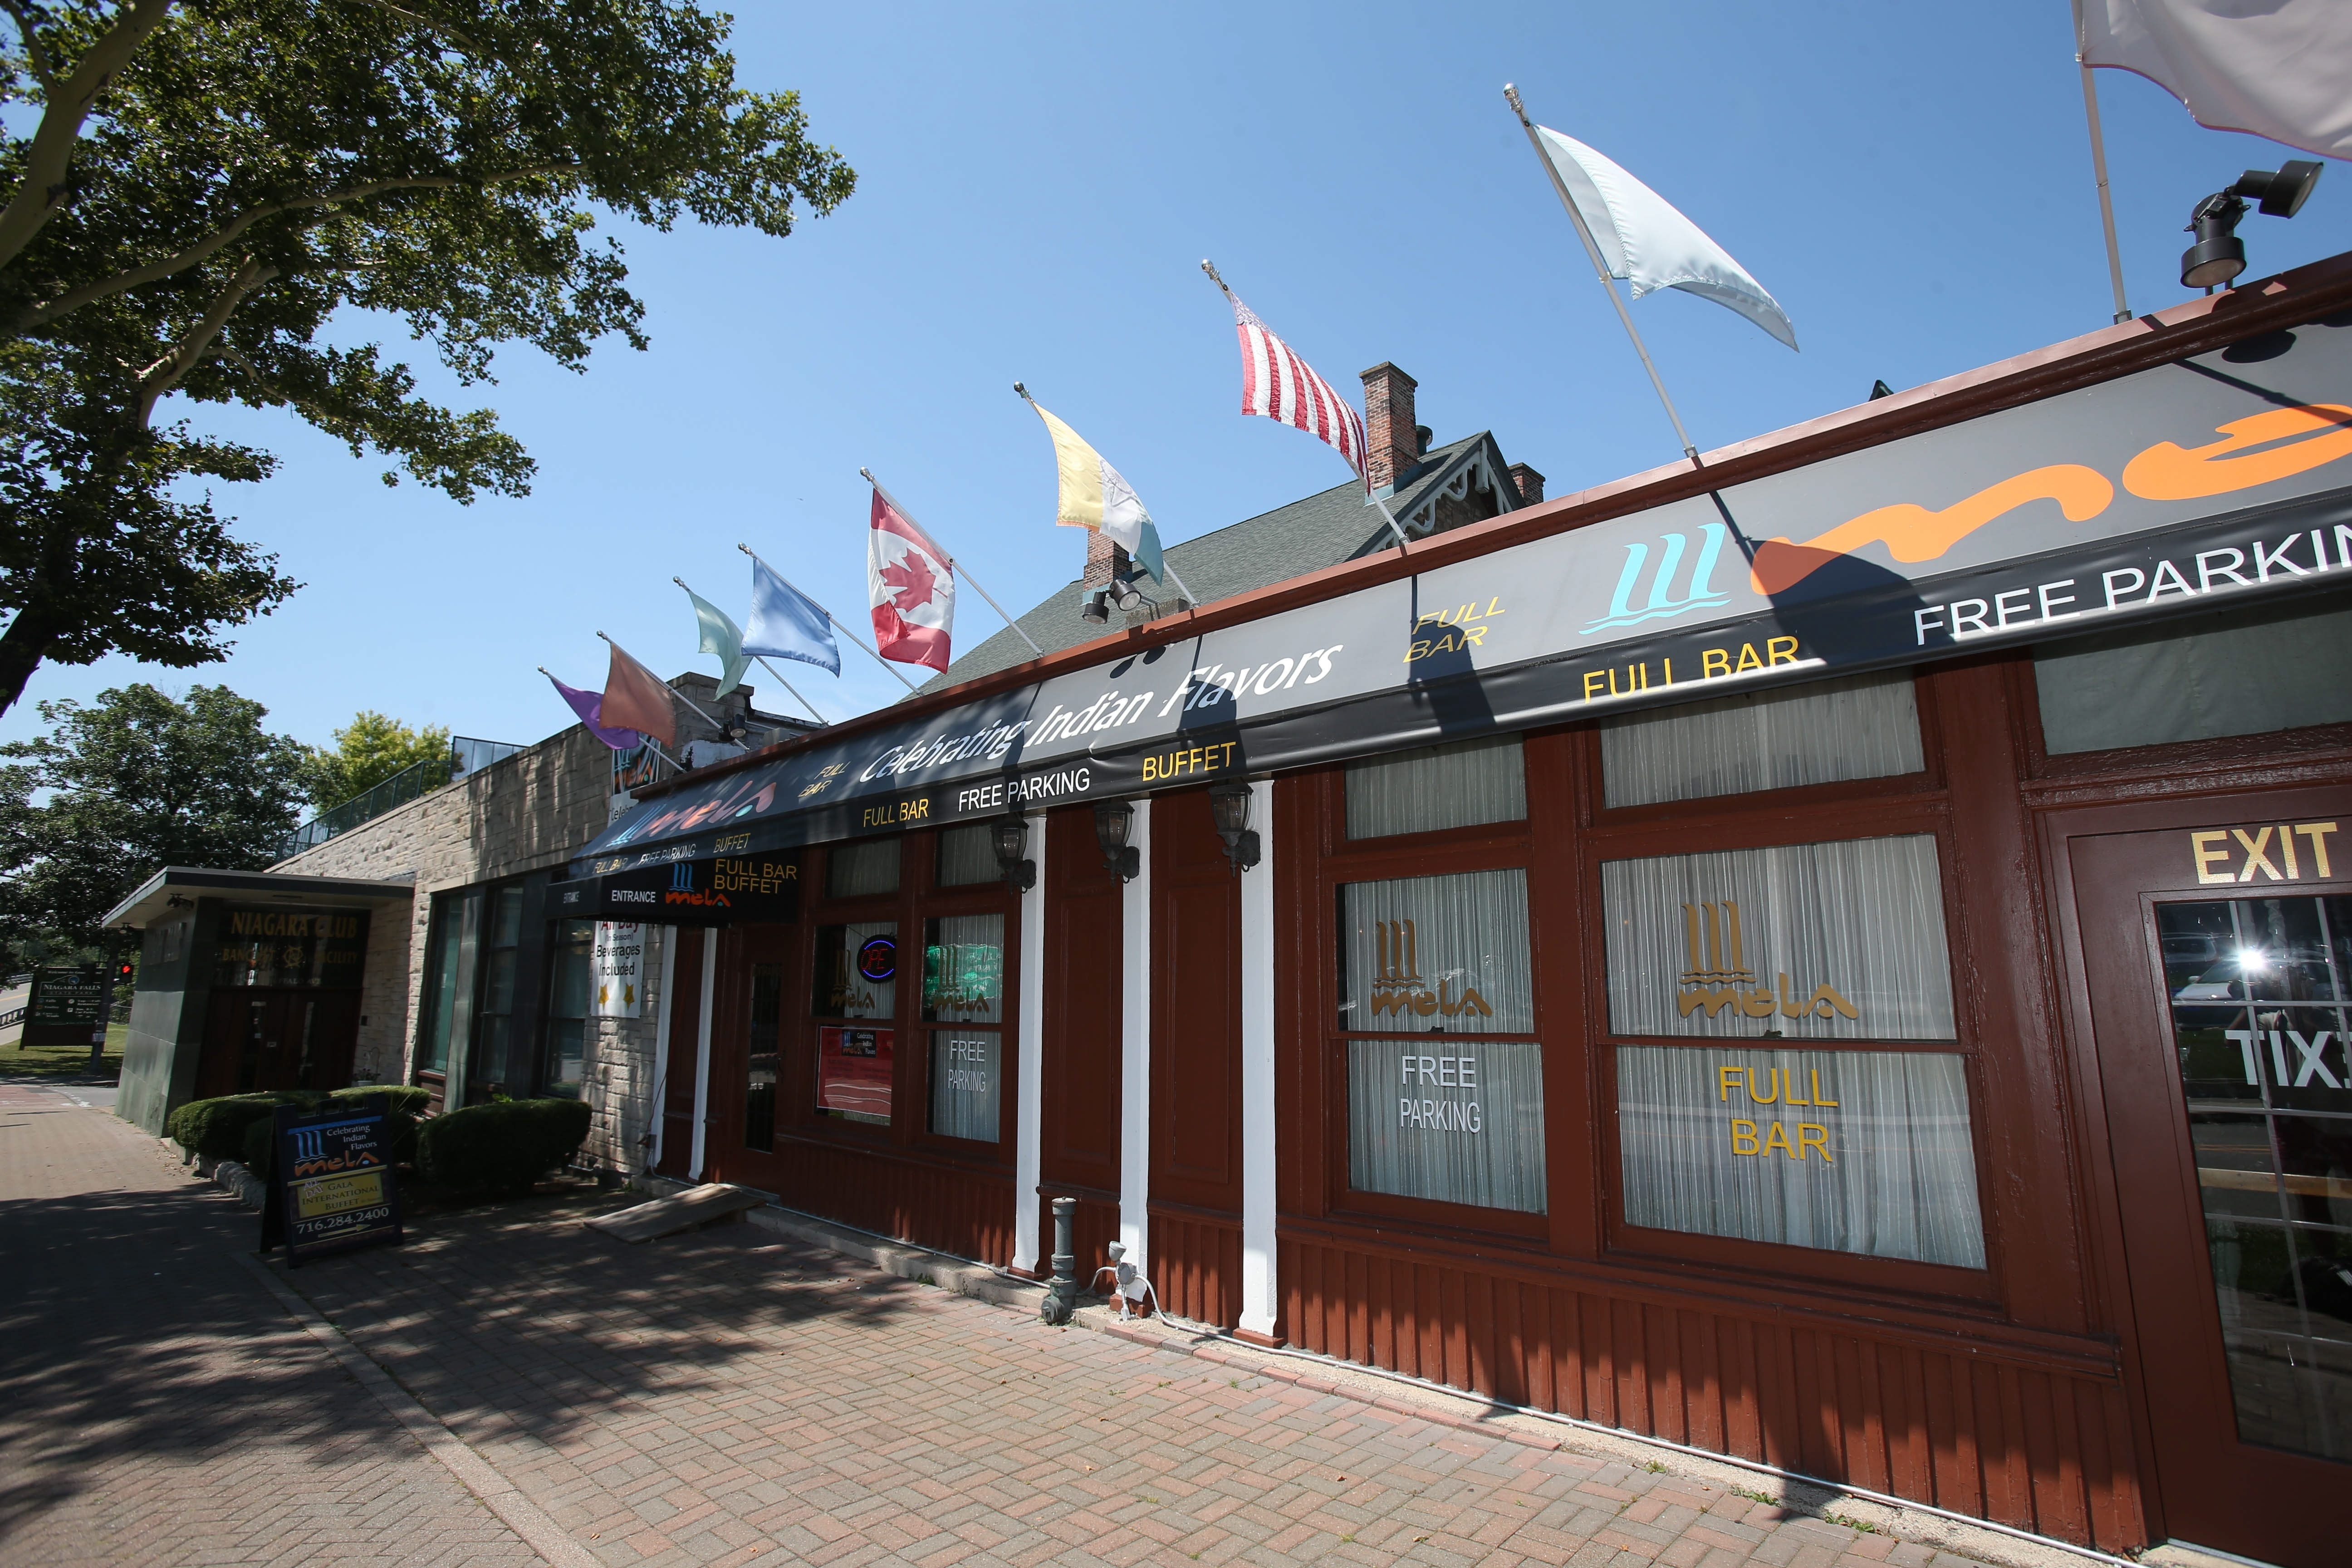 An exterior view of Mela Indian Restaurant, which is located in a corner of the old Niagara Club at the foot of Goat Island.